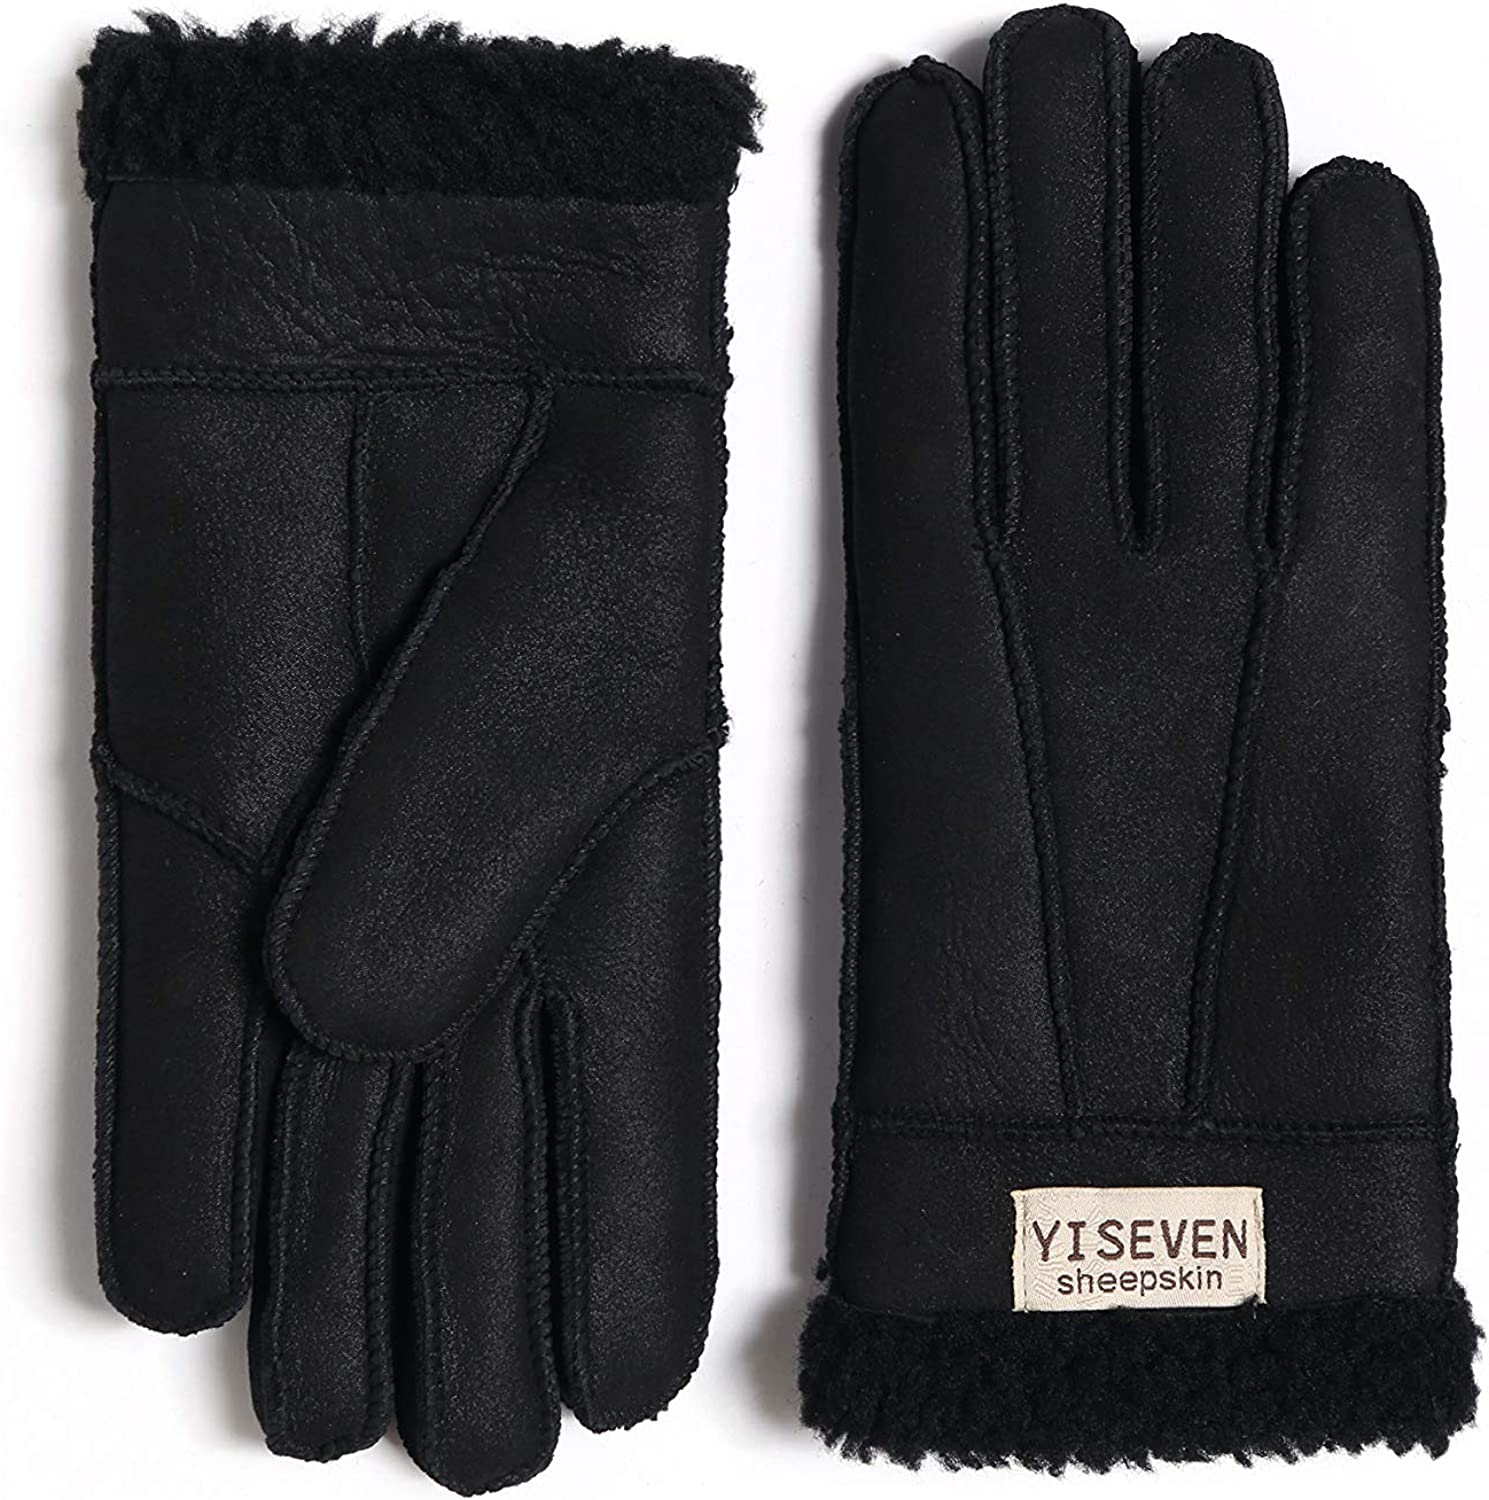 YISEVEN Womens Winter Sheepskin Shearling Leather Gloves Mittens Wool Cuffs